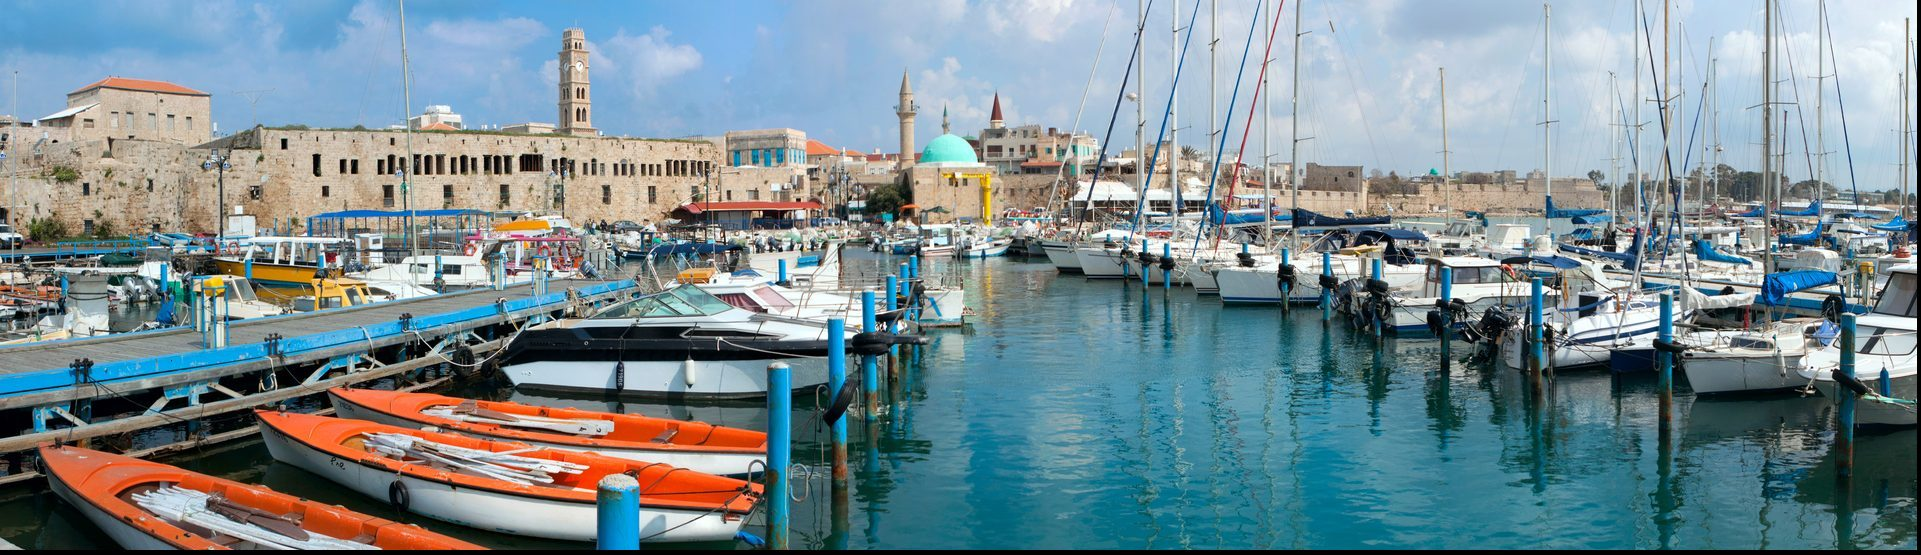 The historic port of Acre in north Israel. Panorama